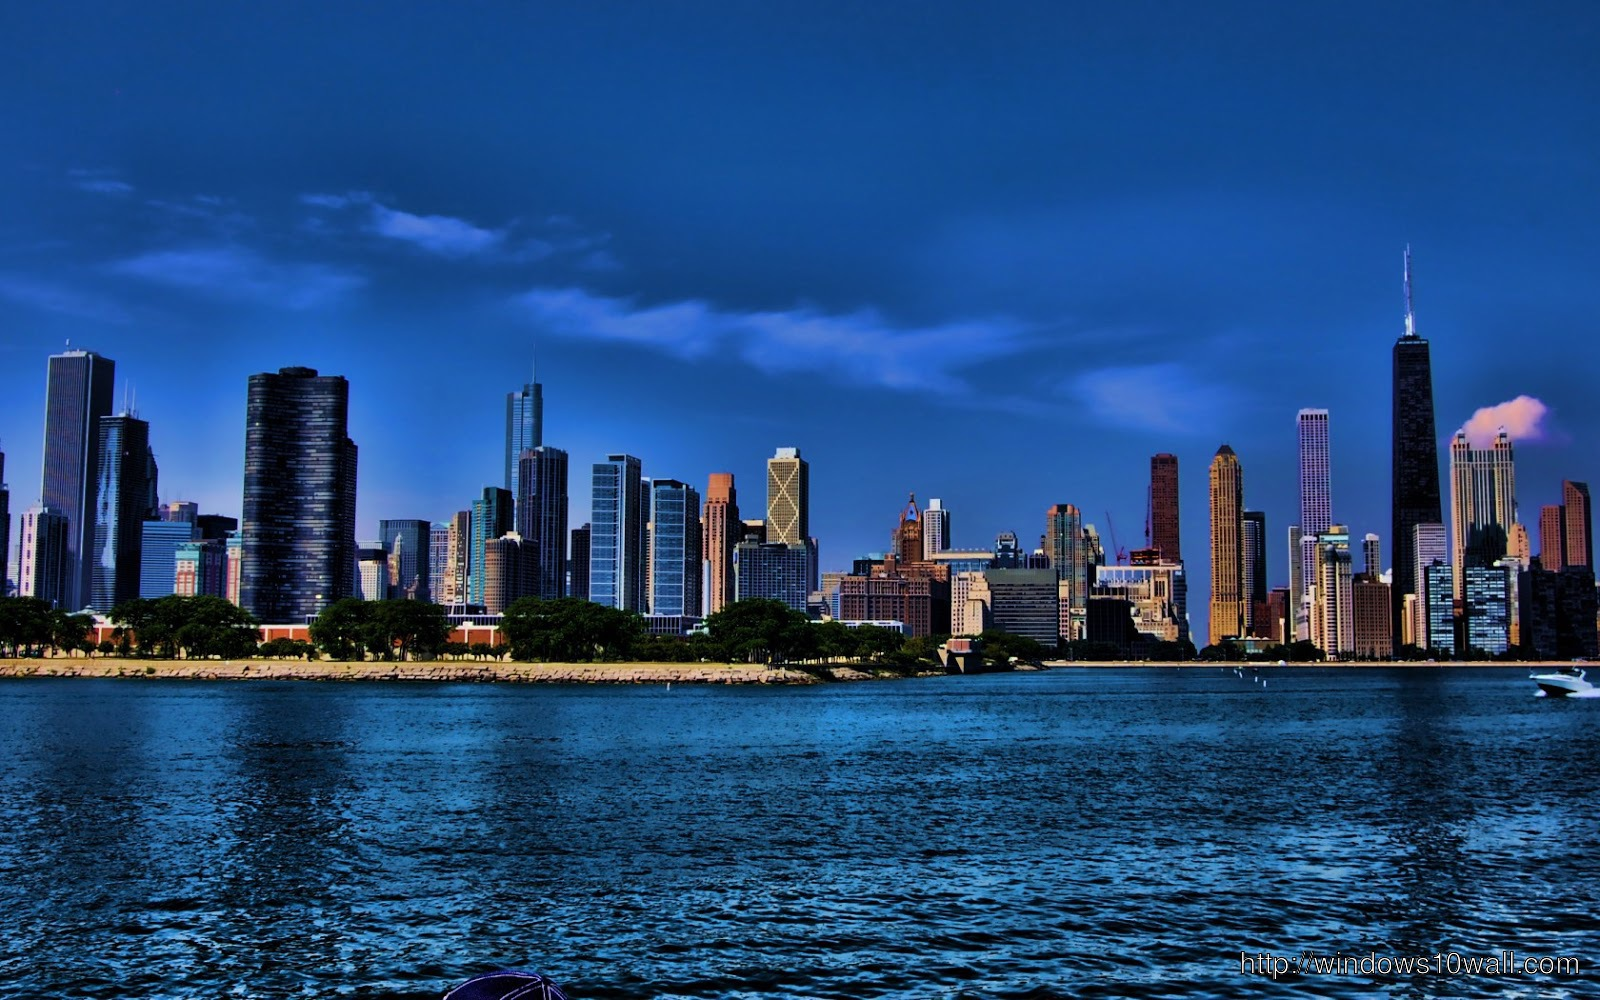 chicago windows 10 wallpapers